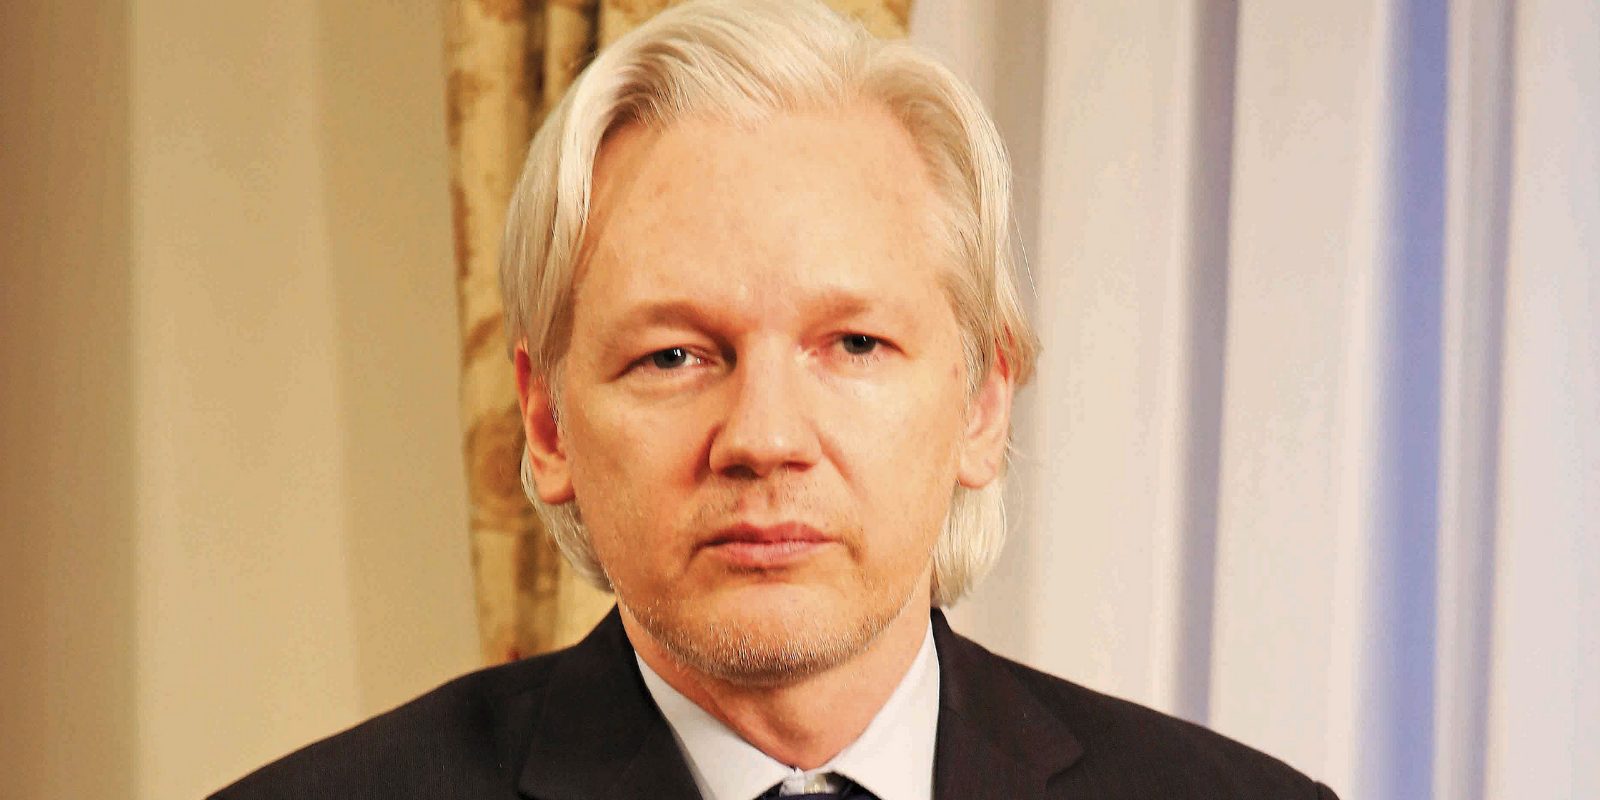 Project Veritas releases BOMBSHELL call from Assange in 2011